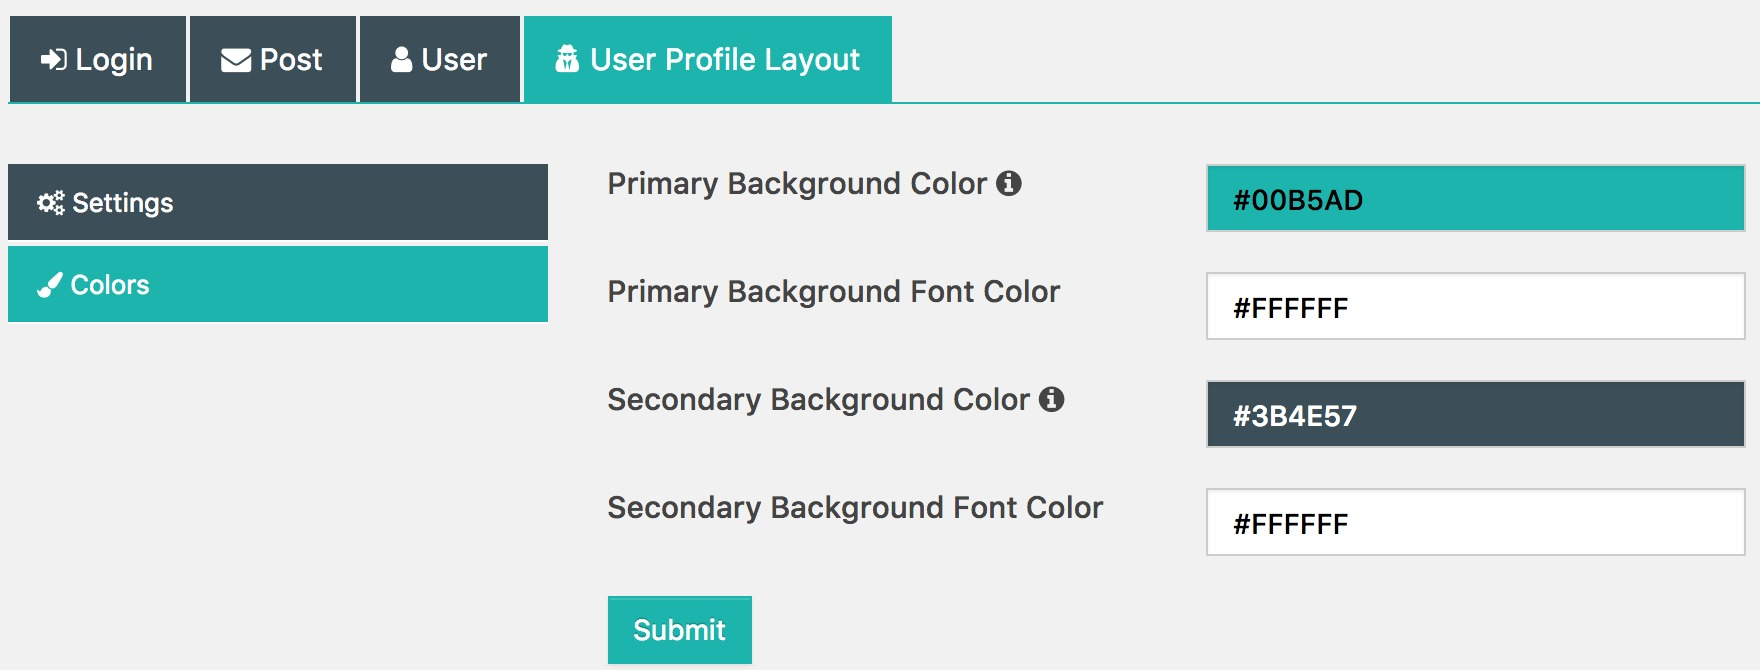 User Profile Layout Color